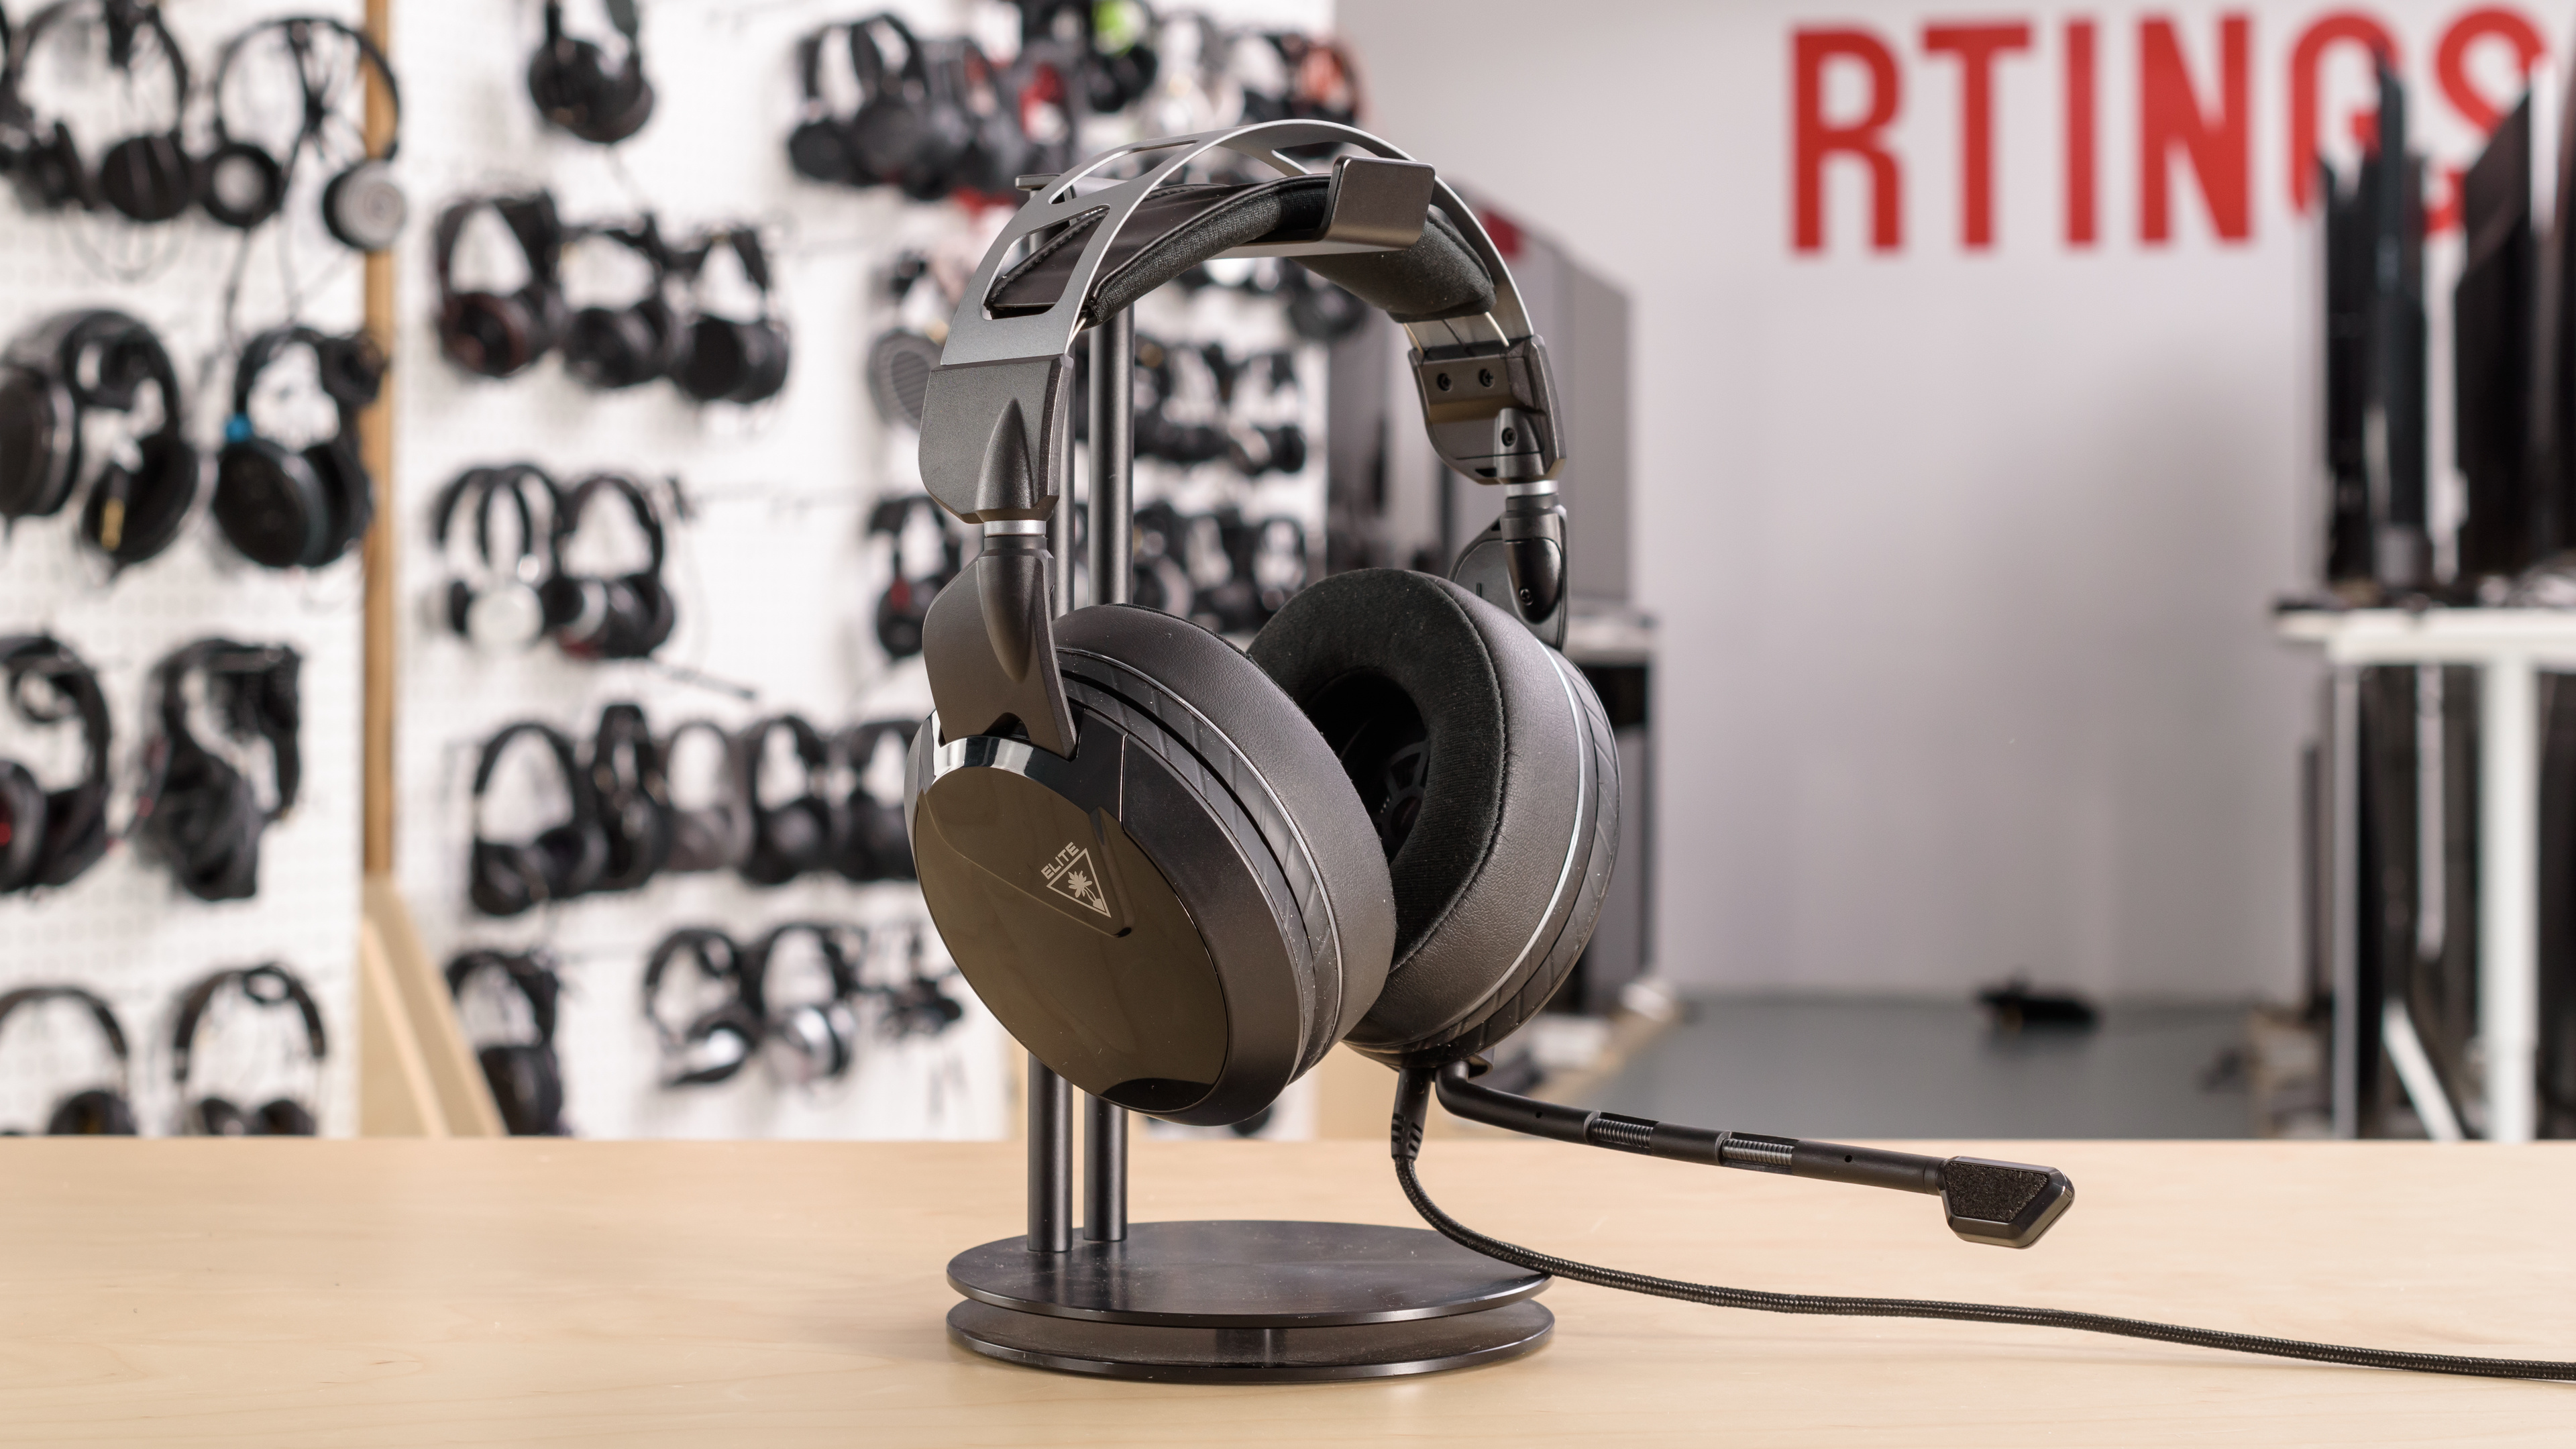 abdf00ff872 Turtle Beach Elite Atlas Review - RTINGS.com